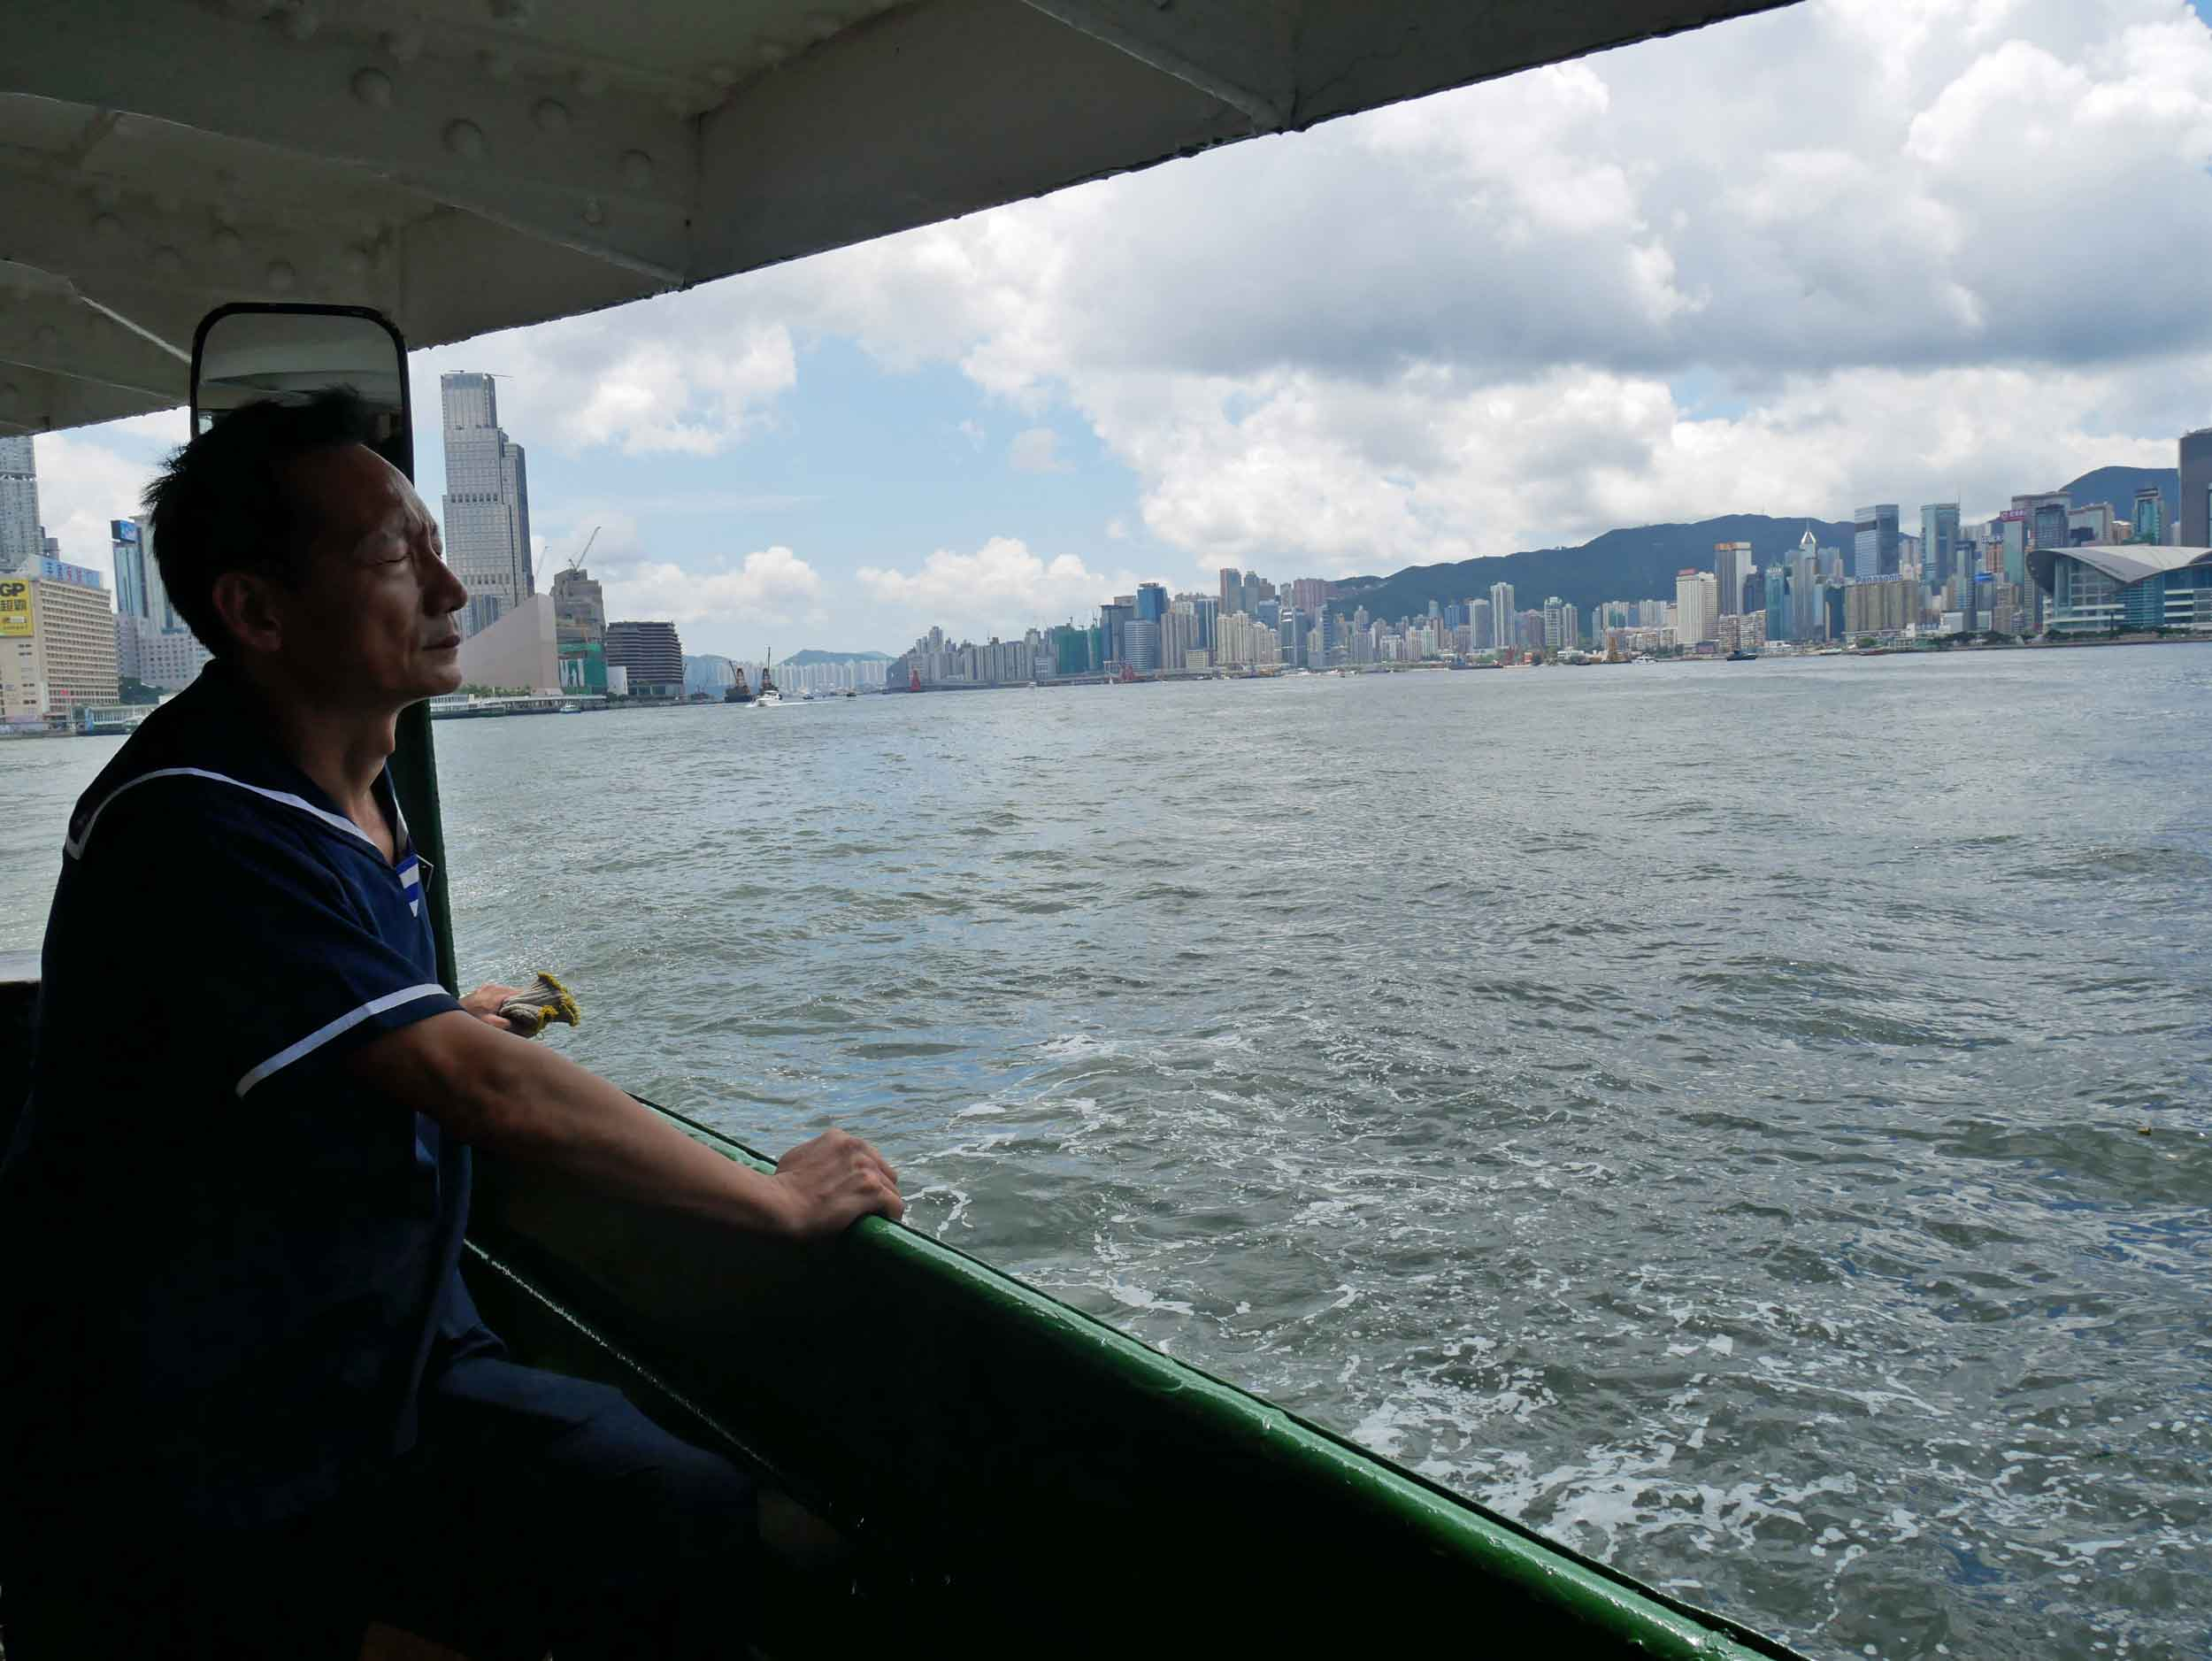 In the afternoon, we took the ferry back across Victoria Harbour to meet up with friends for lunch in the Wan Chai area.